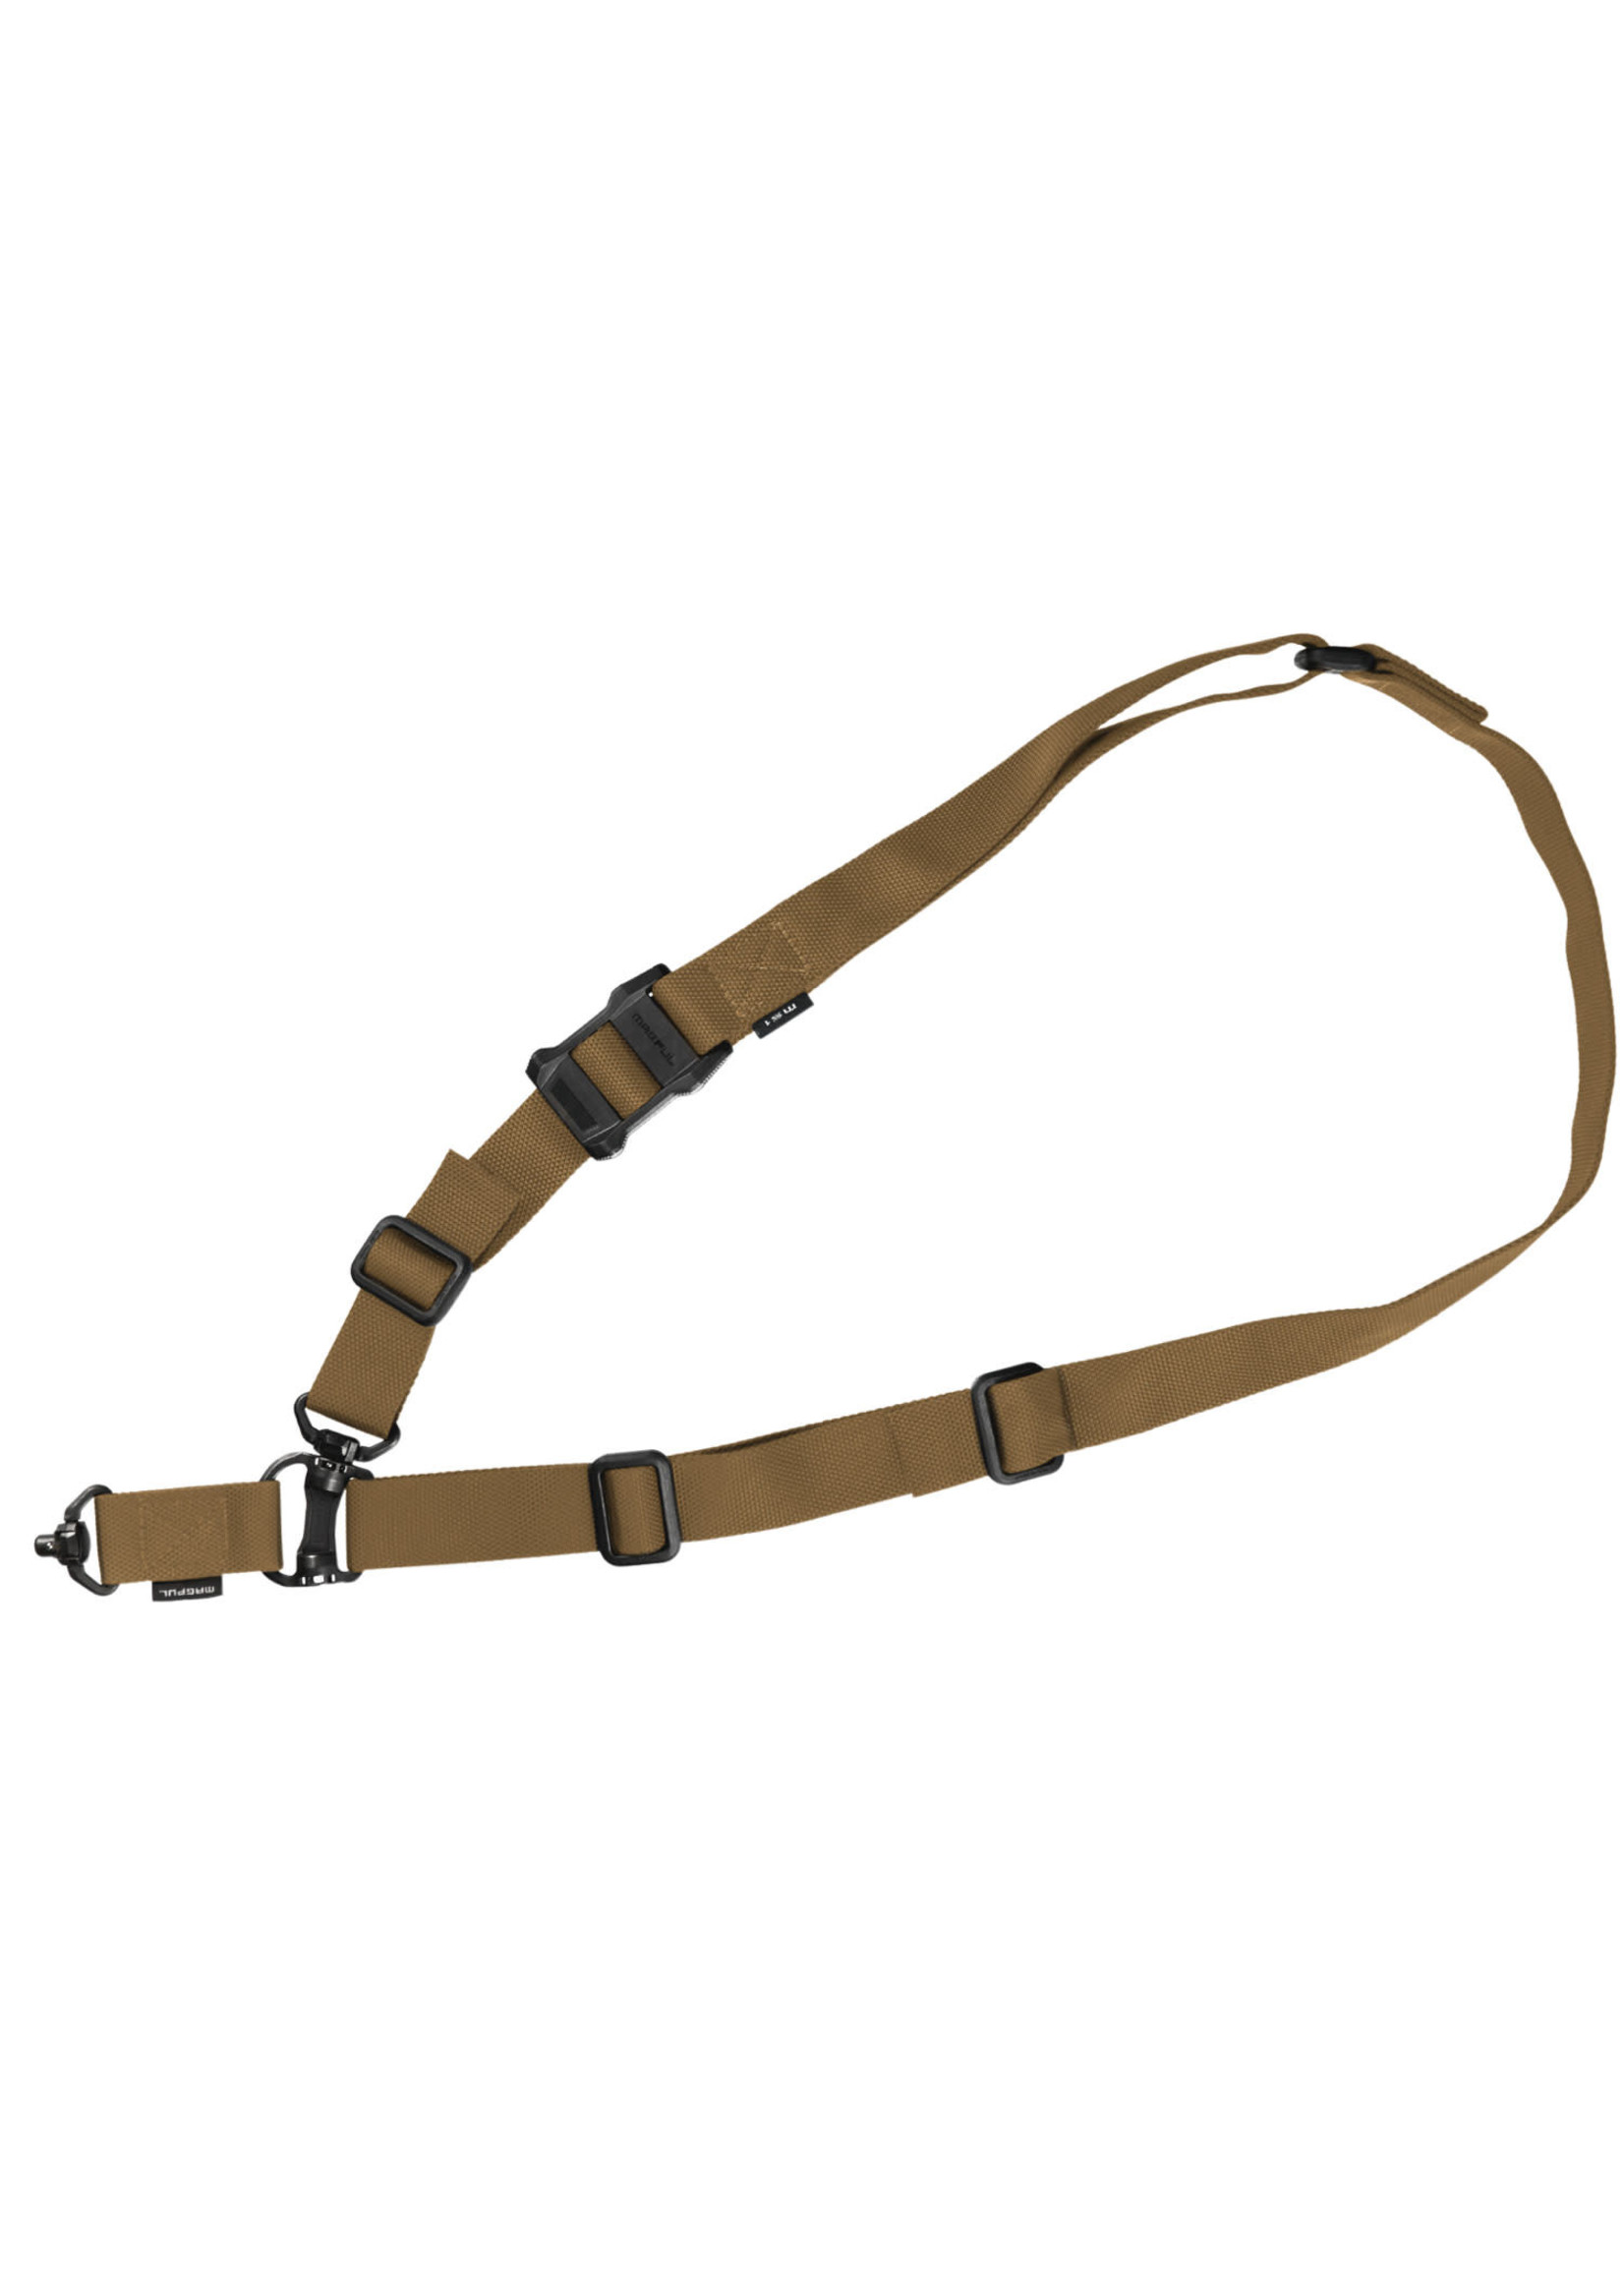 """Magpul Magpul MS4 QDM Sling 1.25"""" Adjustable Two-Point Coyote Nylon Webbing for Rifle"""